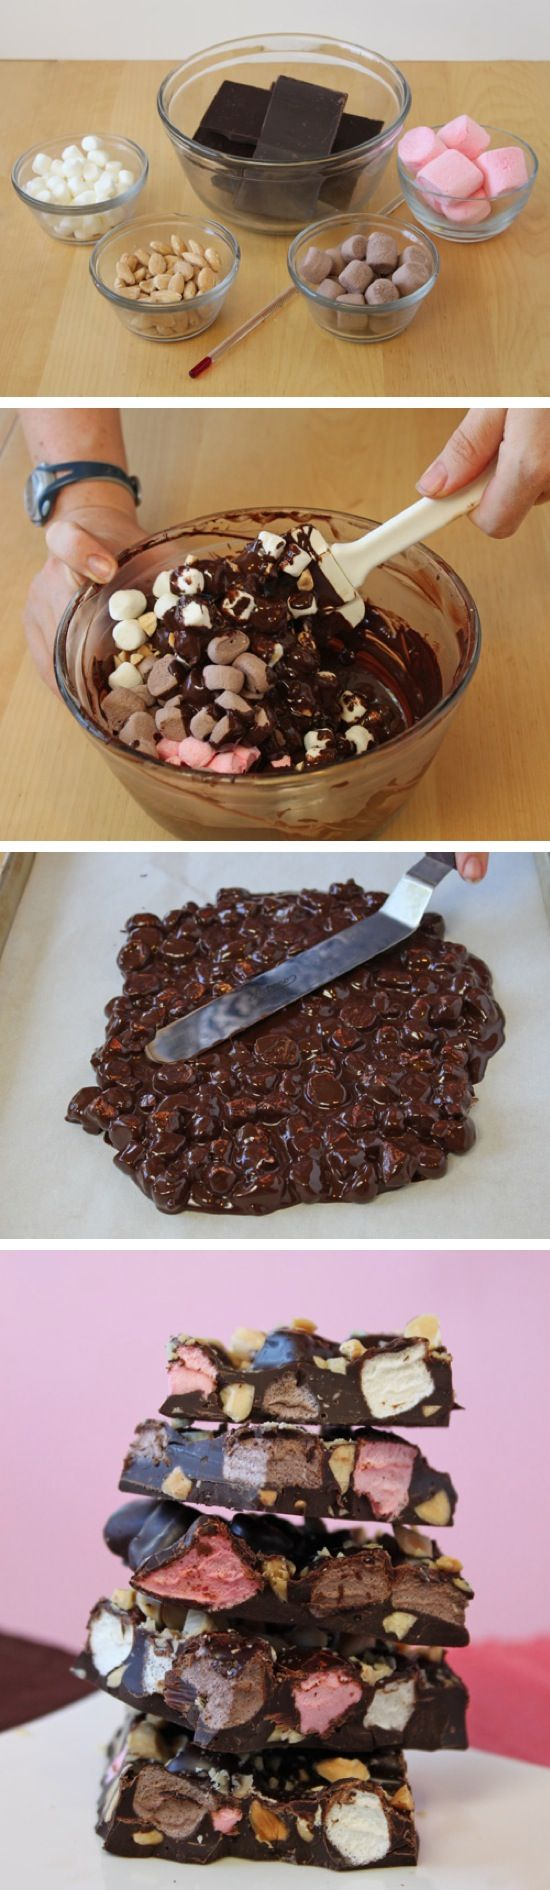 Neapolitan Rocky Road Bars Recipe - Way to get your sugar level high!